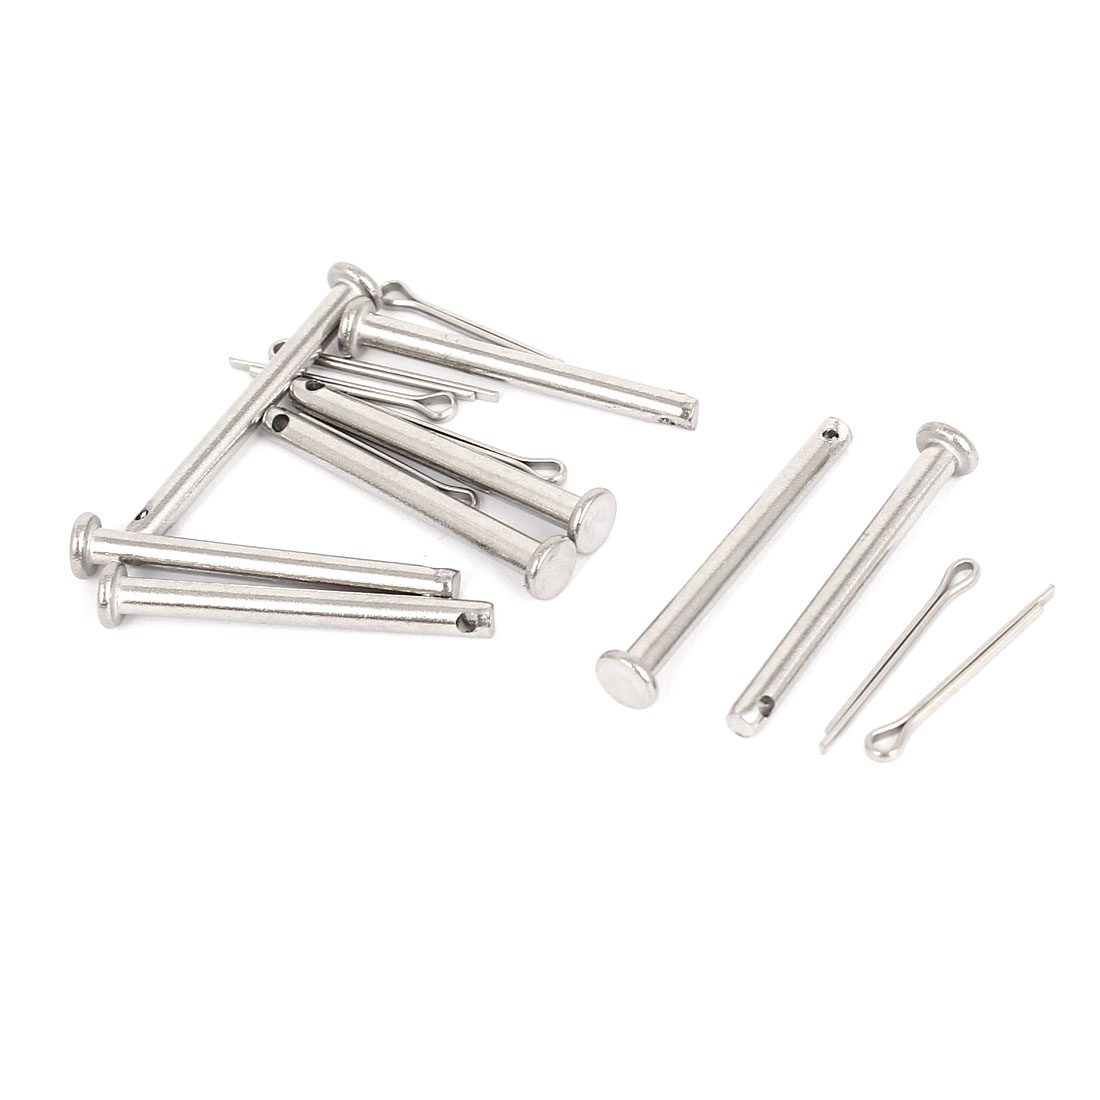 M3 x 30mm Flat Head 304 Stainless Steel Round Clevis Pins Fastener 8Sets